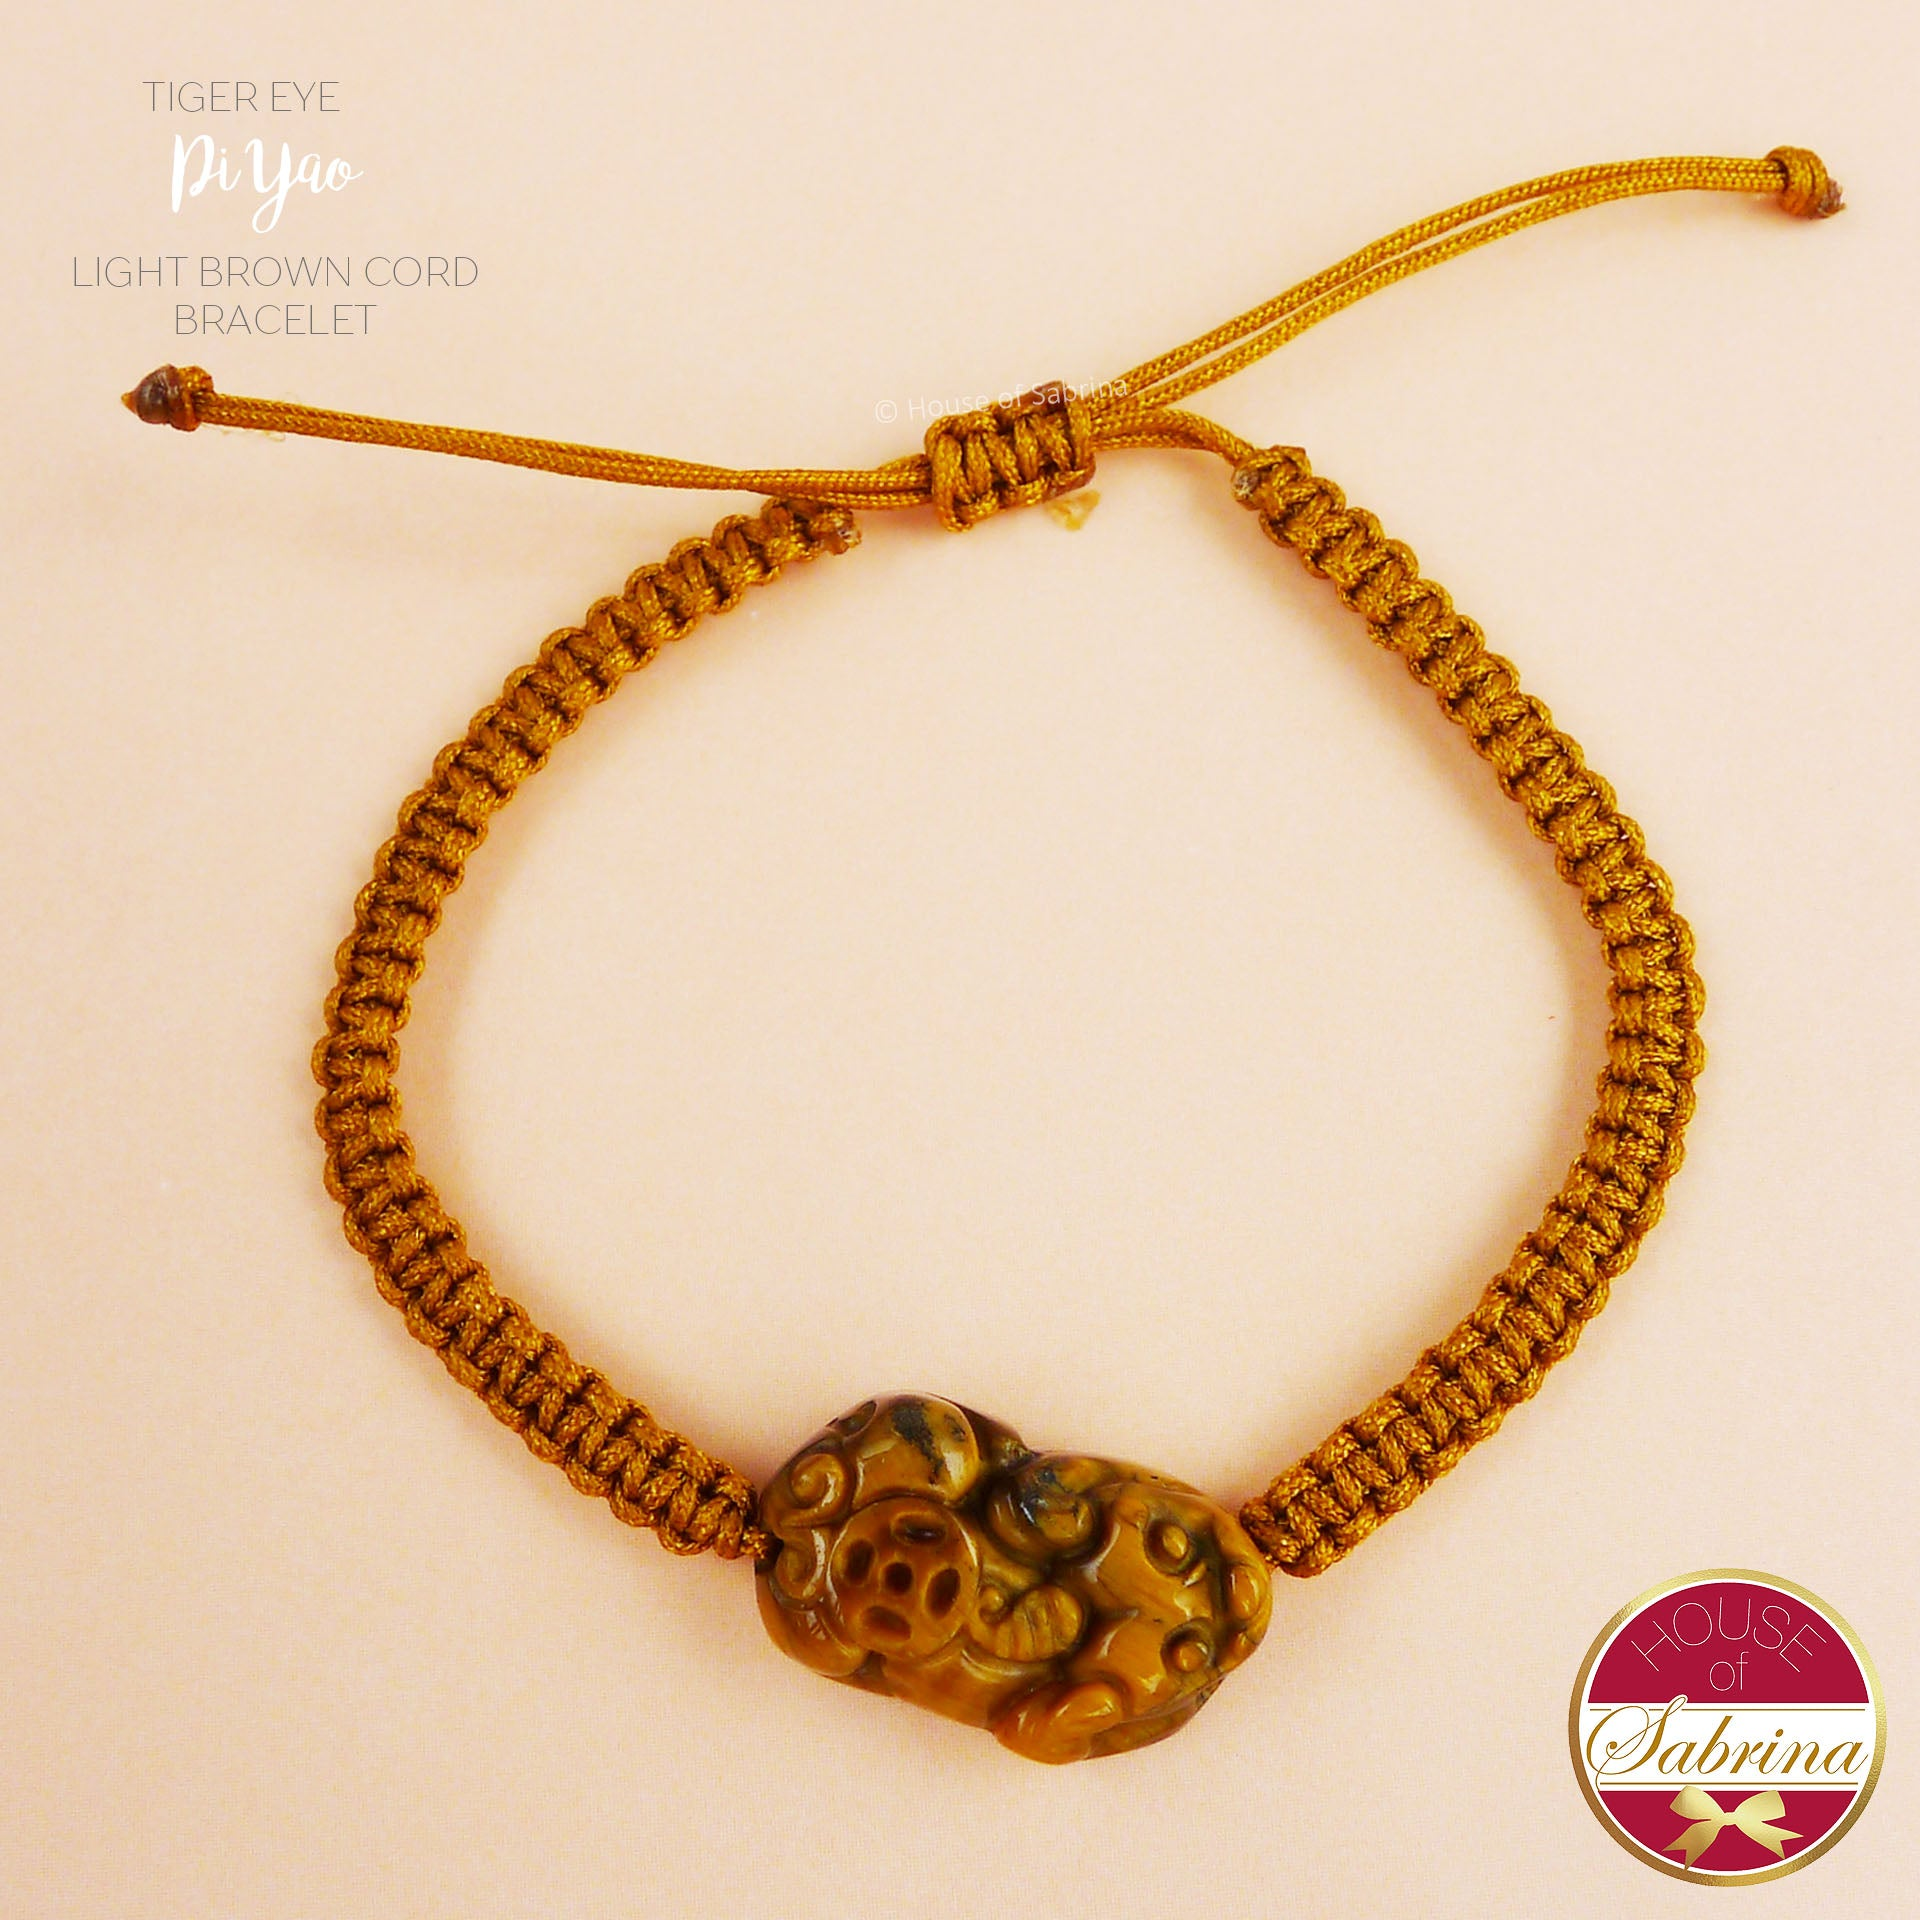 TIGER EYE PI YAO with LIGHT BROWN CORD BRACELET